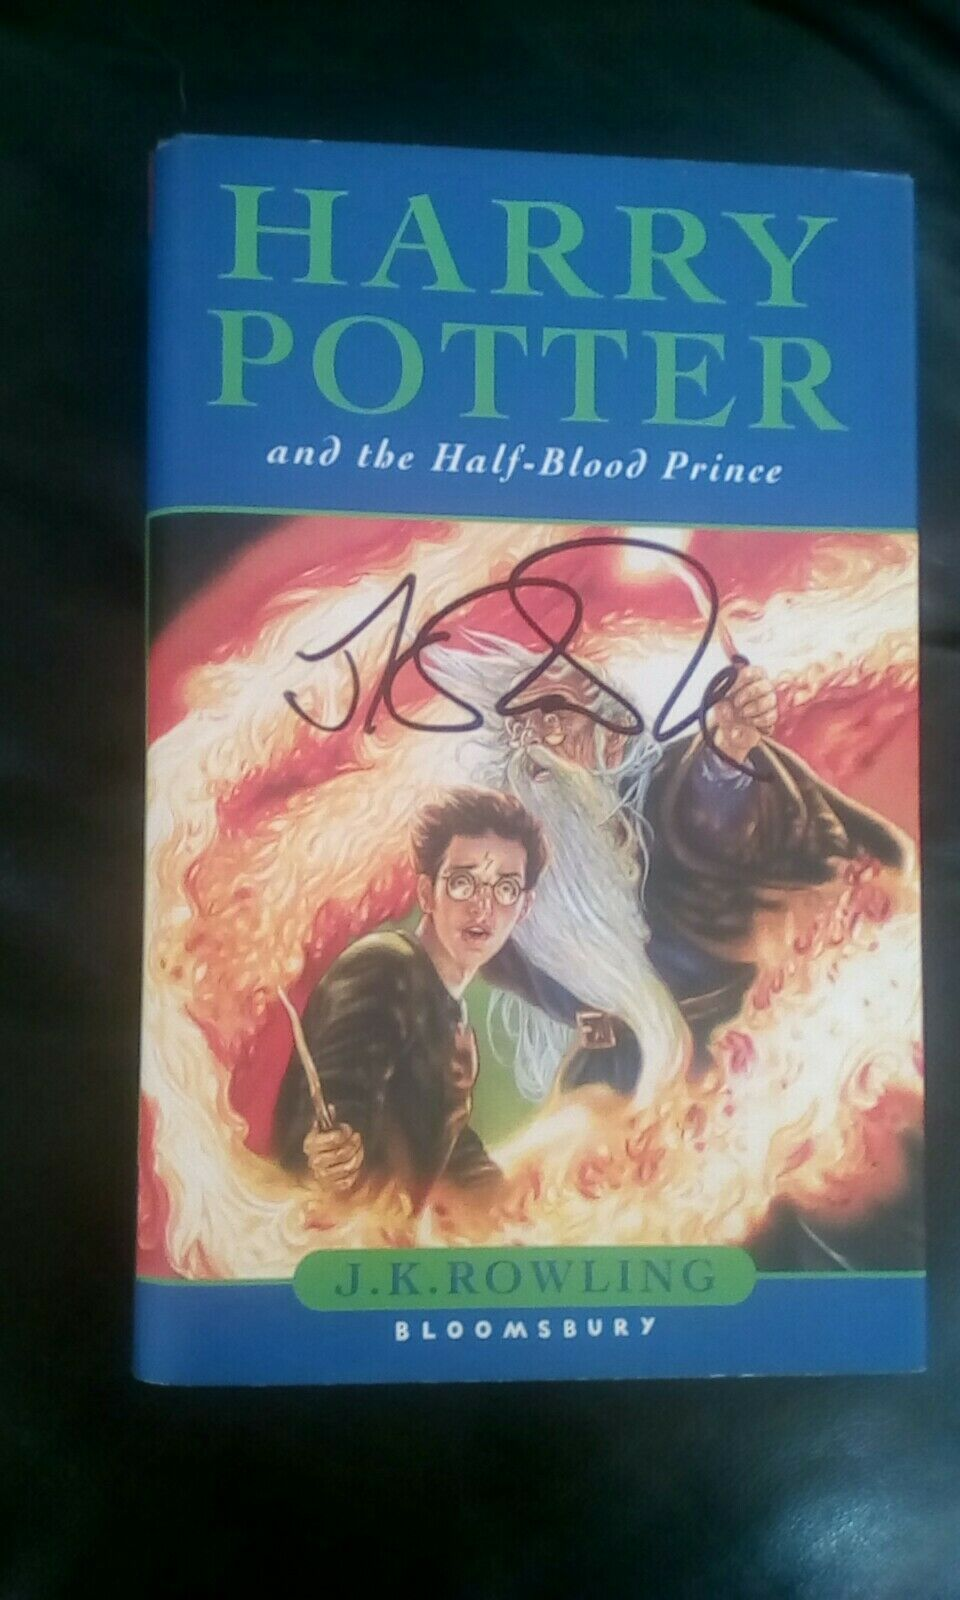 J.K. Rowling Forgery found in a UK Harry Potter and the Half-Blood Prince found on eBay.